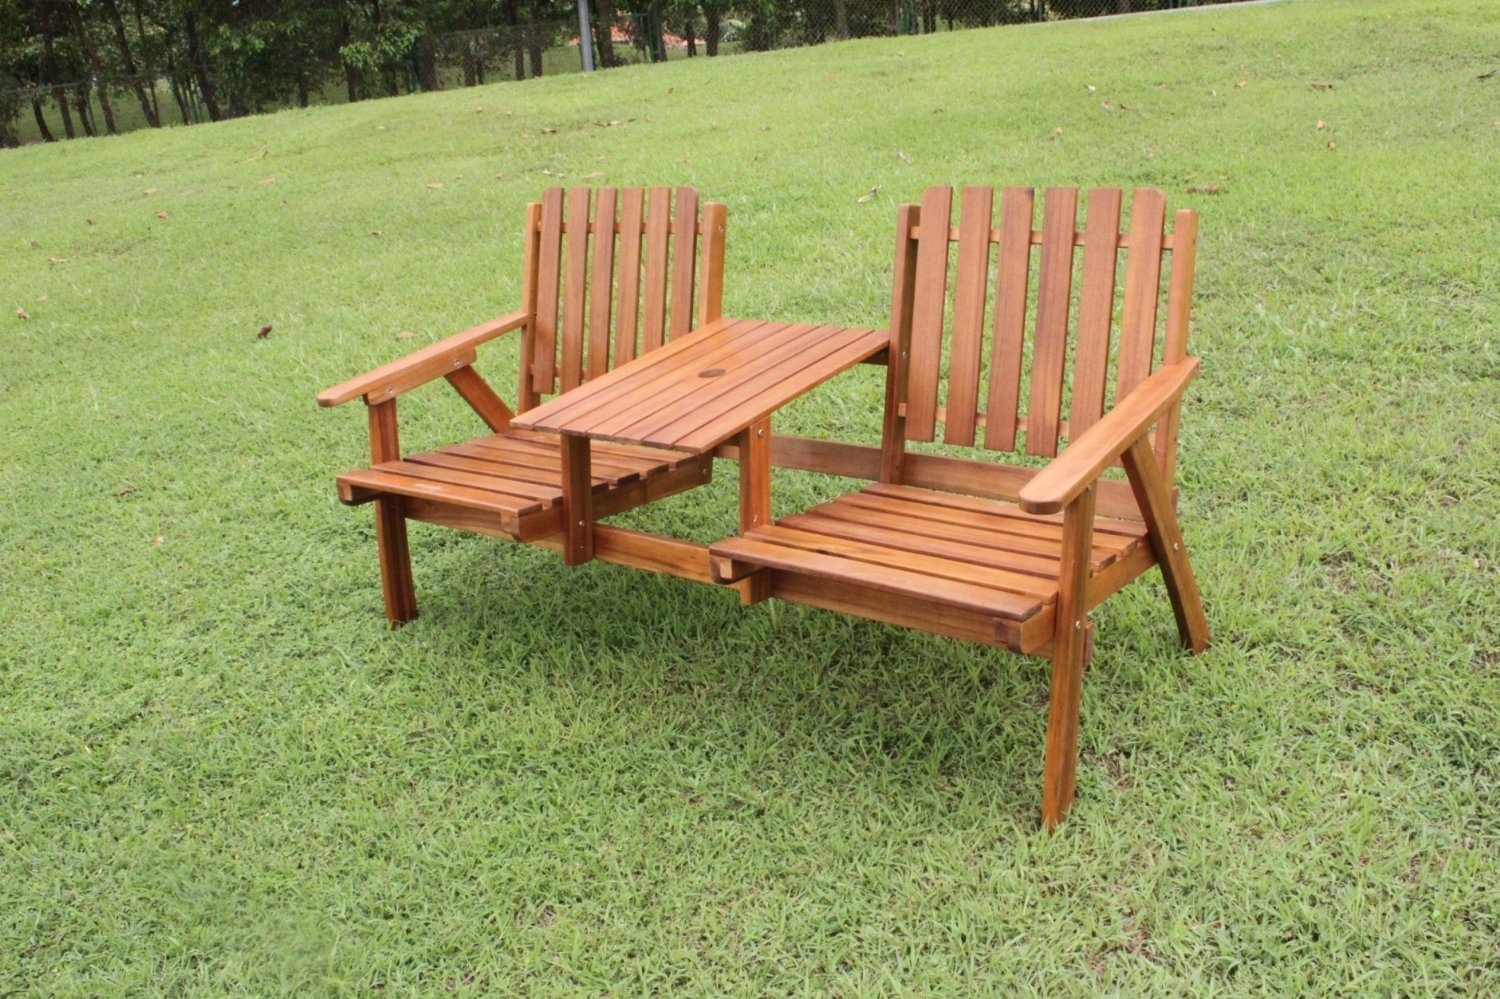 Tete a tete 2 seater love seat simply wood for Garden love seat uk